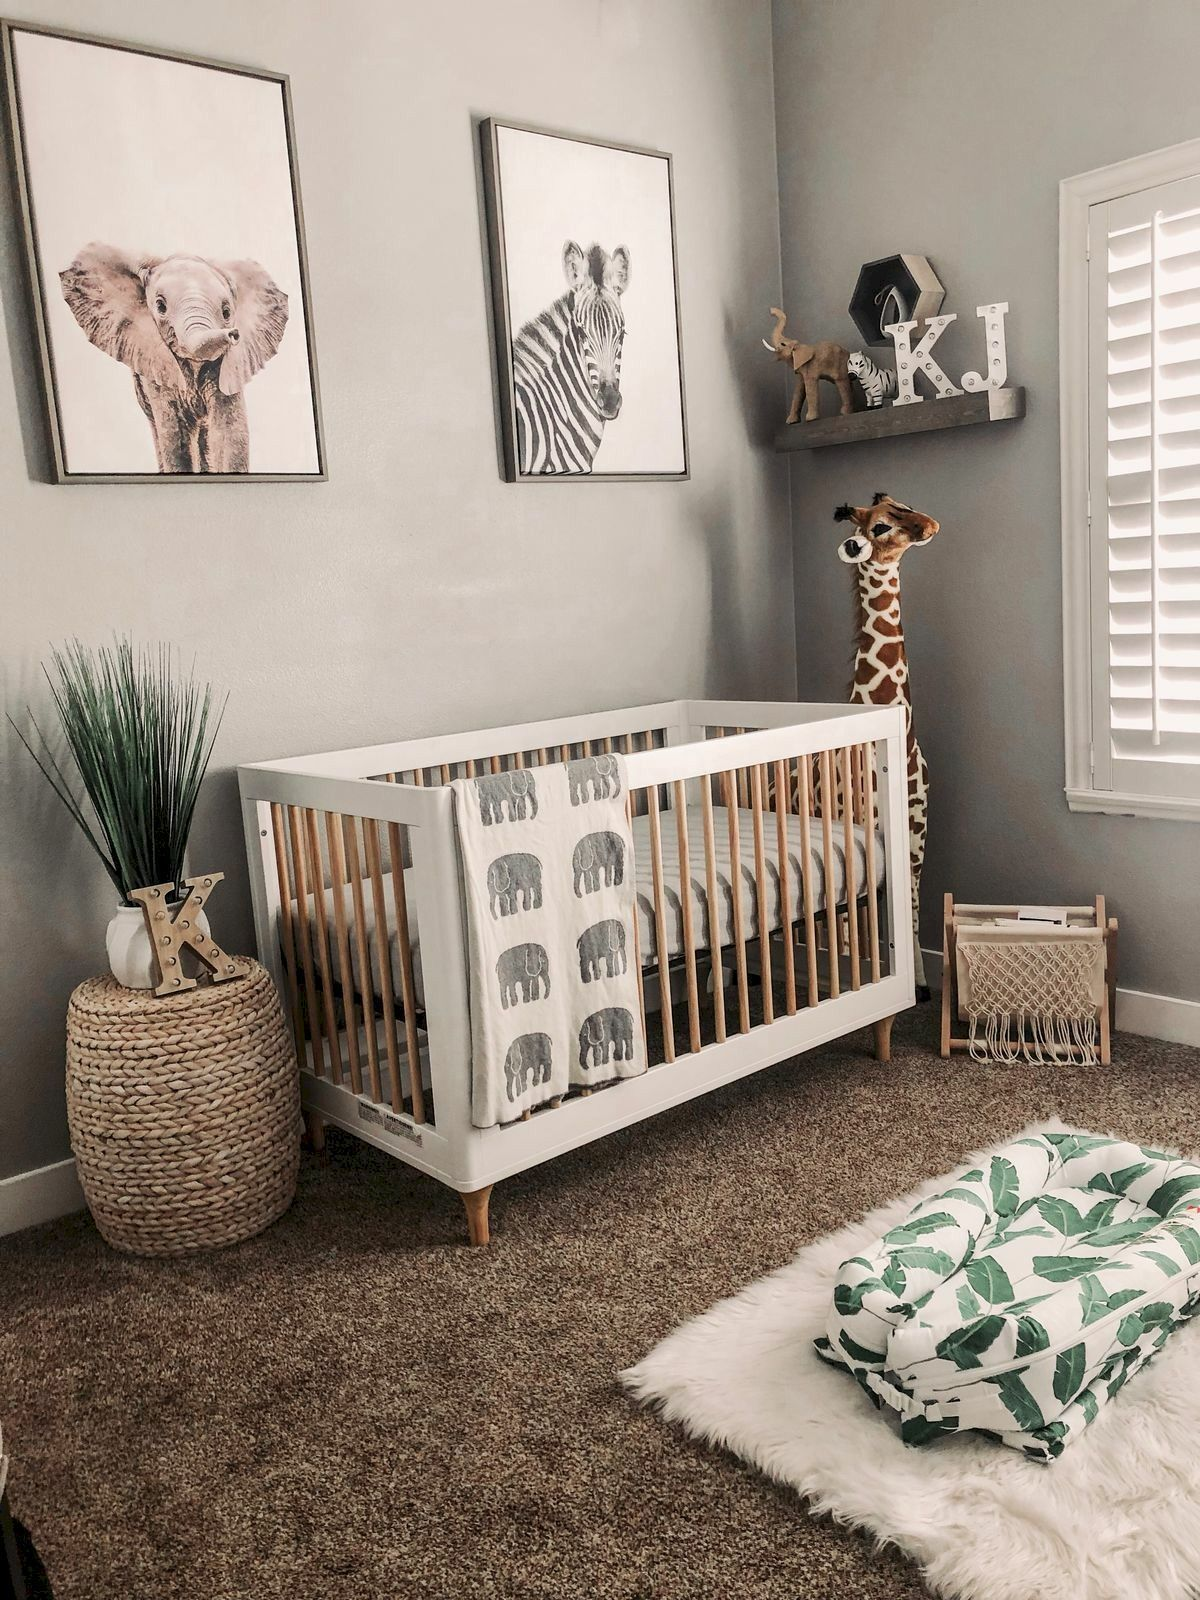 50 Cute Nursery Ideas For Baby Boy Babyboyblankets Your Baby Boy Deserves To Be Spoiled With A Magical Baby Boy Room Decor Nursery Baby Room Nursery Room Boy